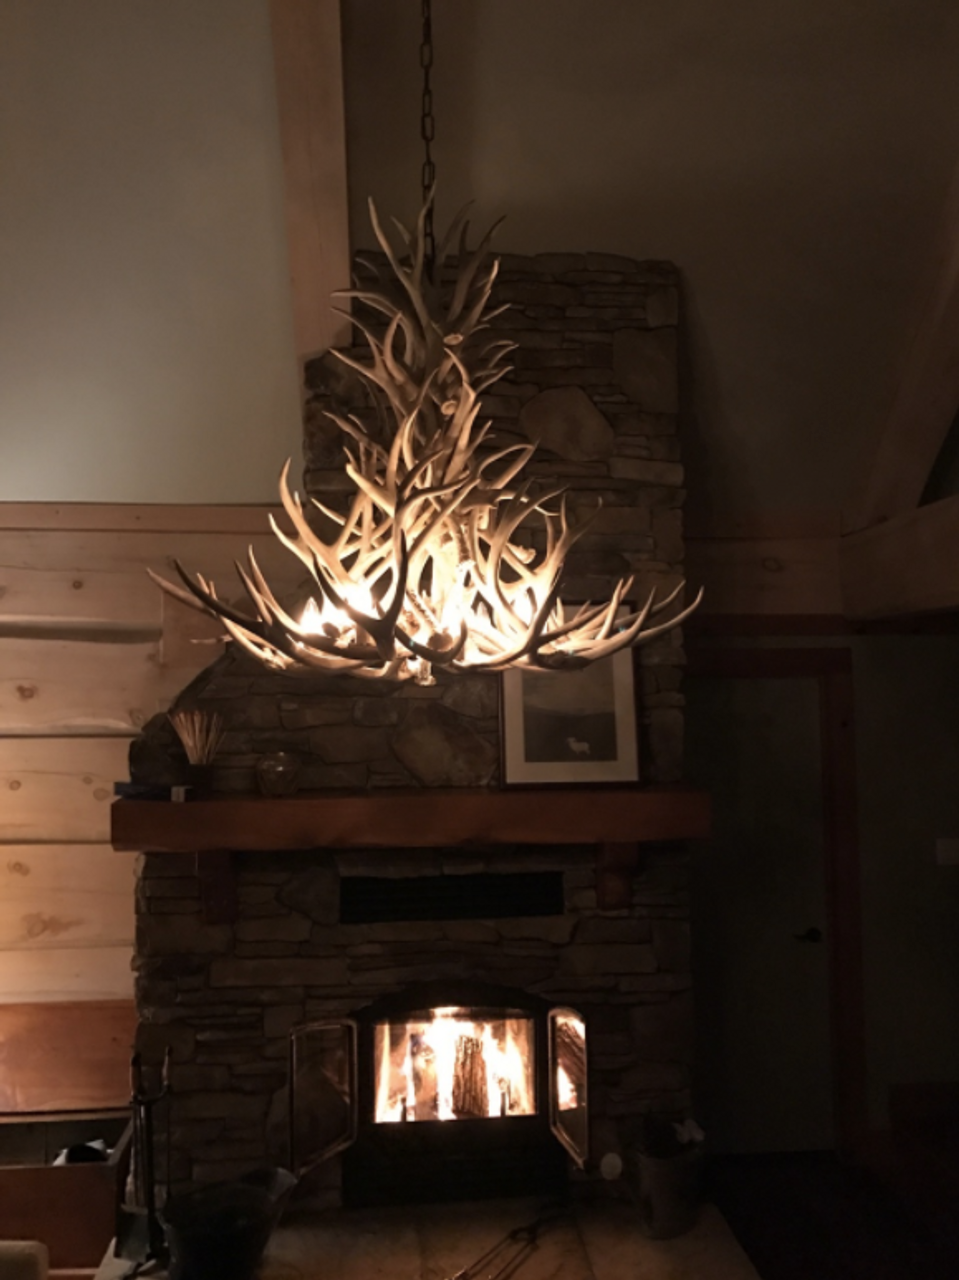 New mexico deer antler chandelier free shipping new mexico deer antler chandelier mozeypictures Choice Image